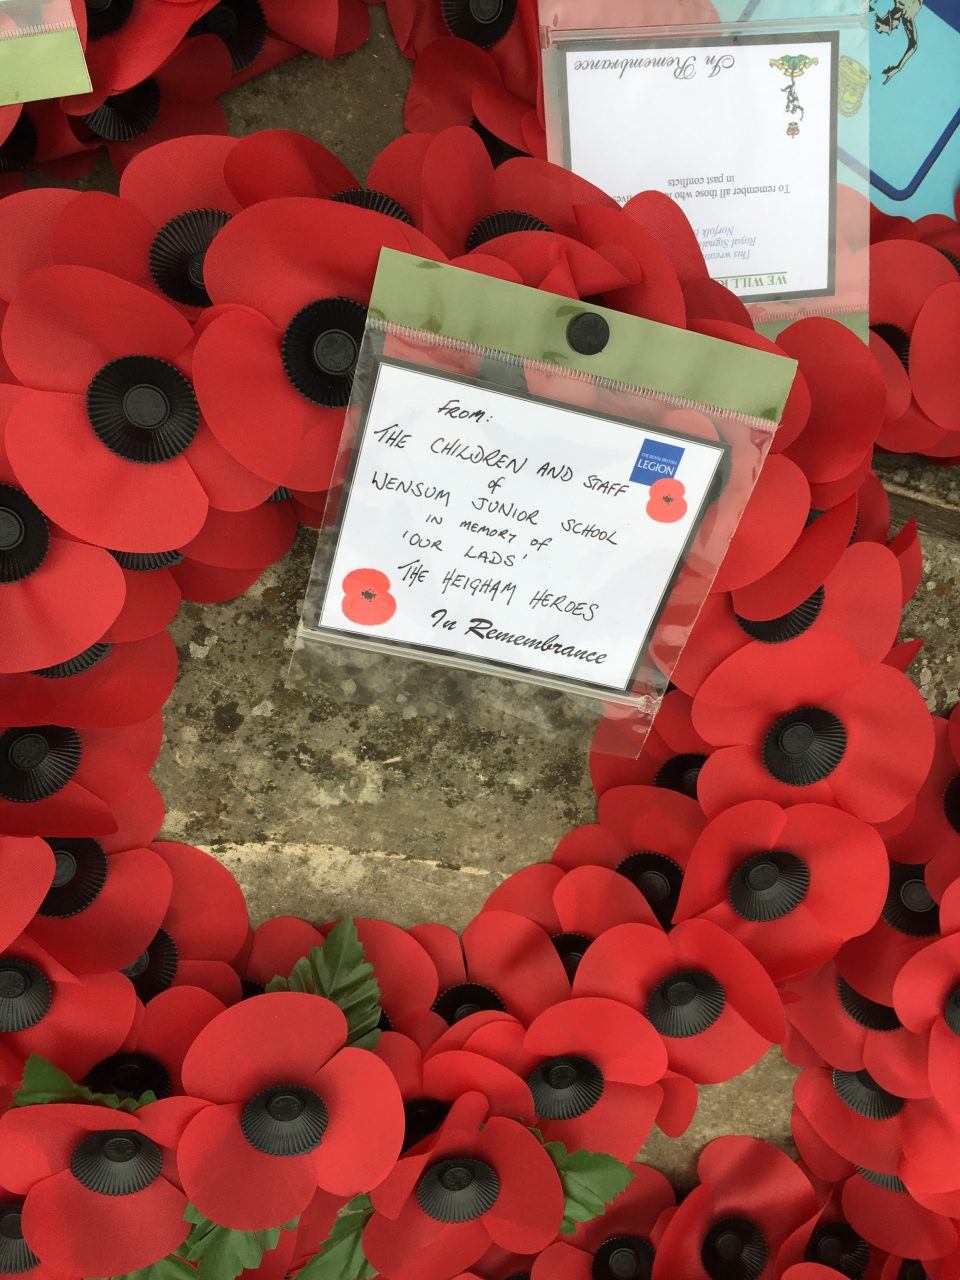 Sunday 12th November – Norwich remembers